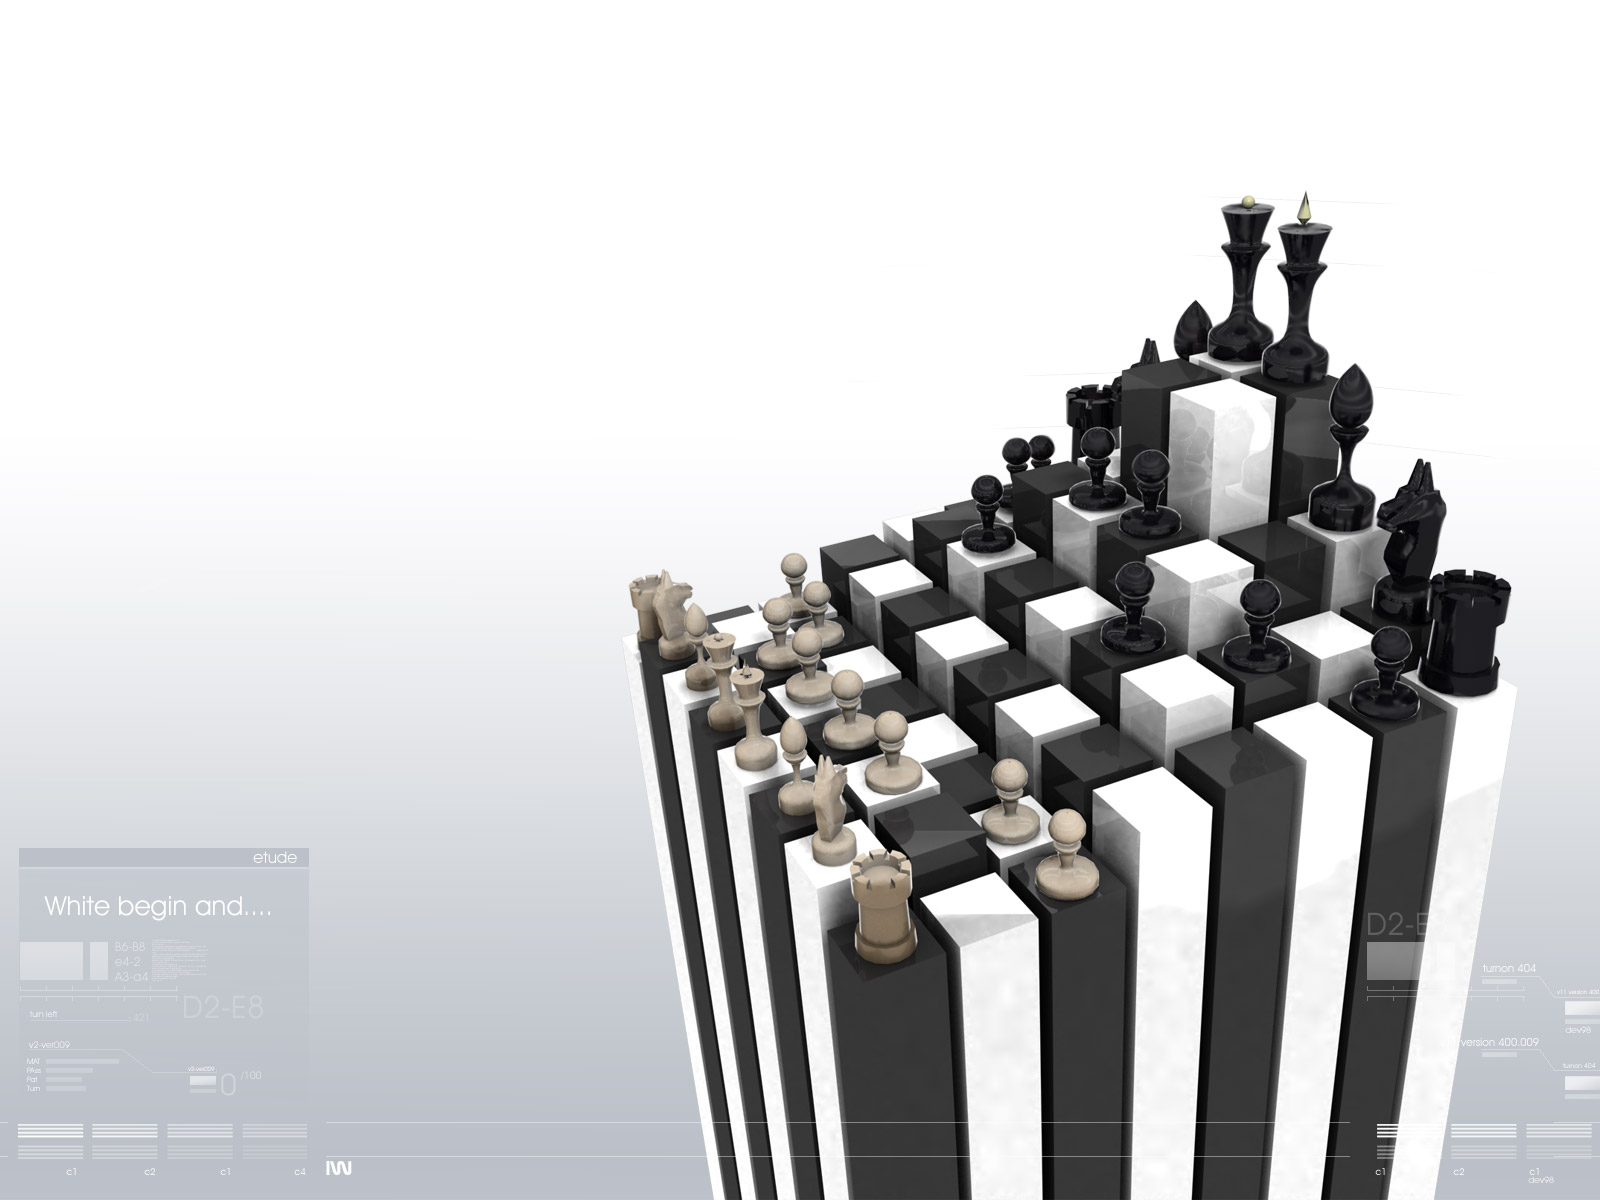 3d chess wallpapers | Amazing Wallpapers  3d chess wallpa...